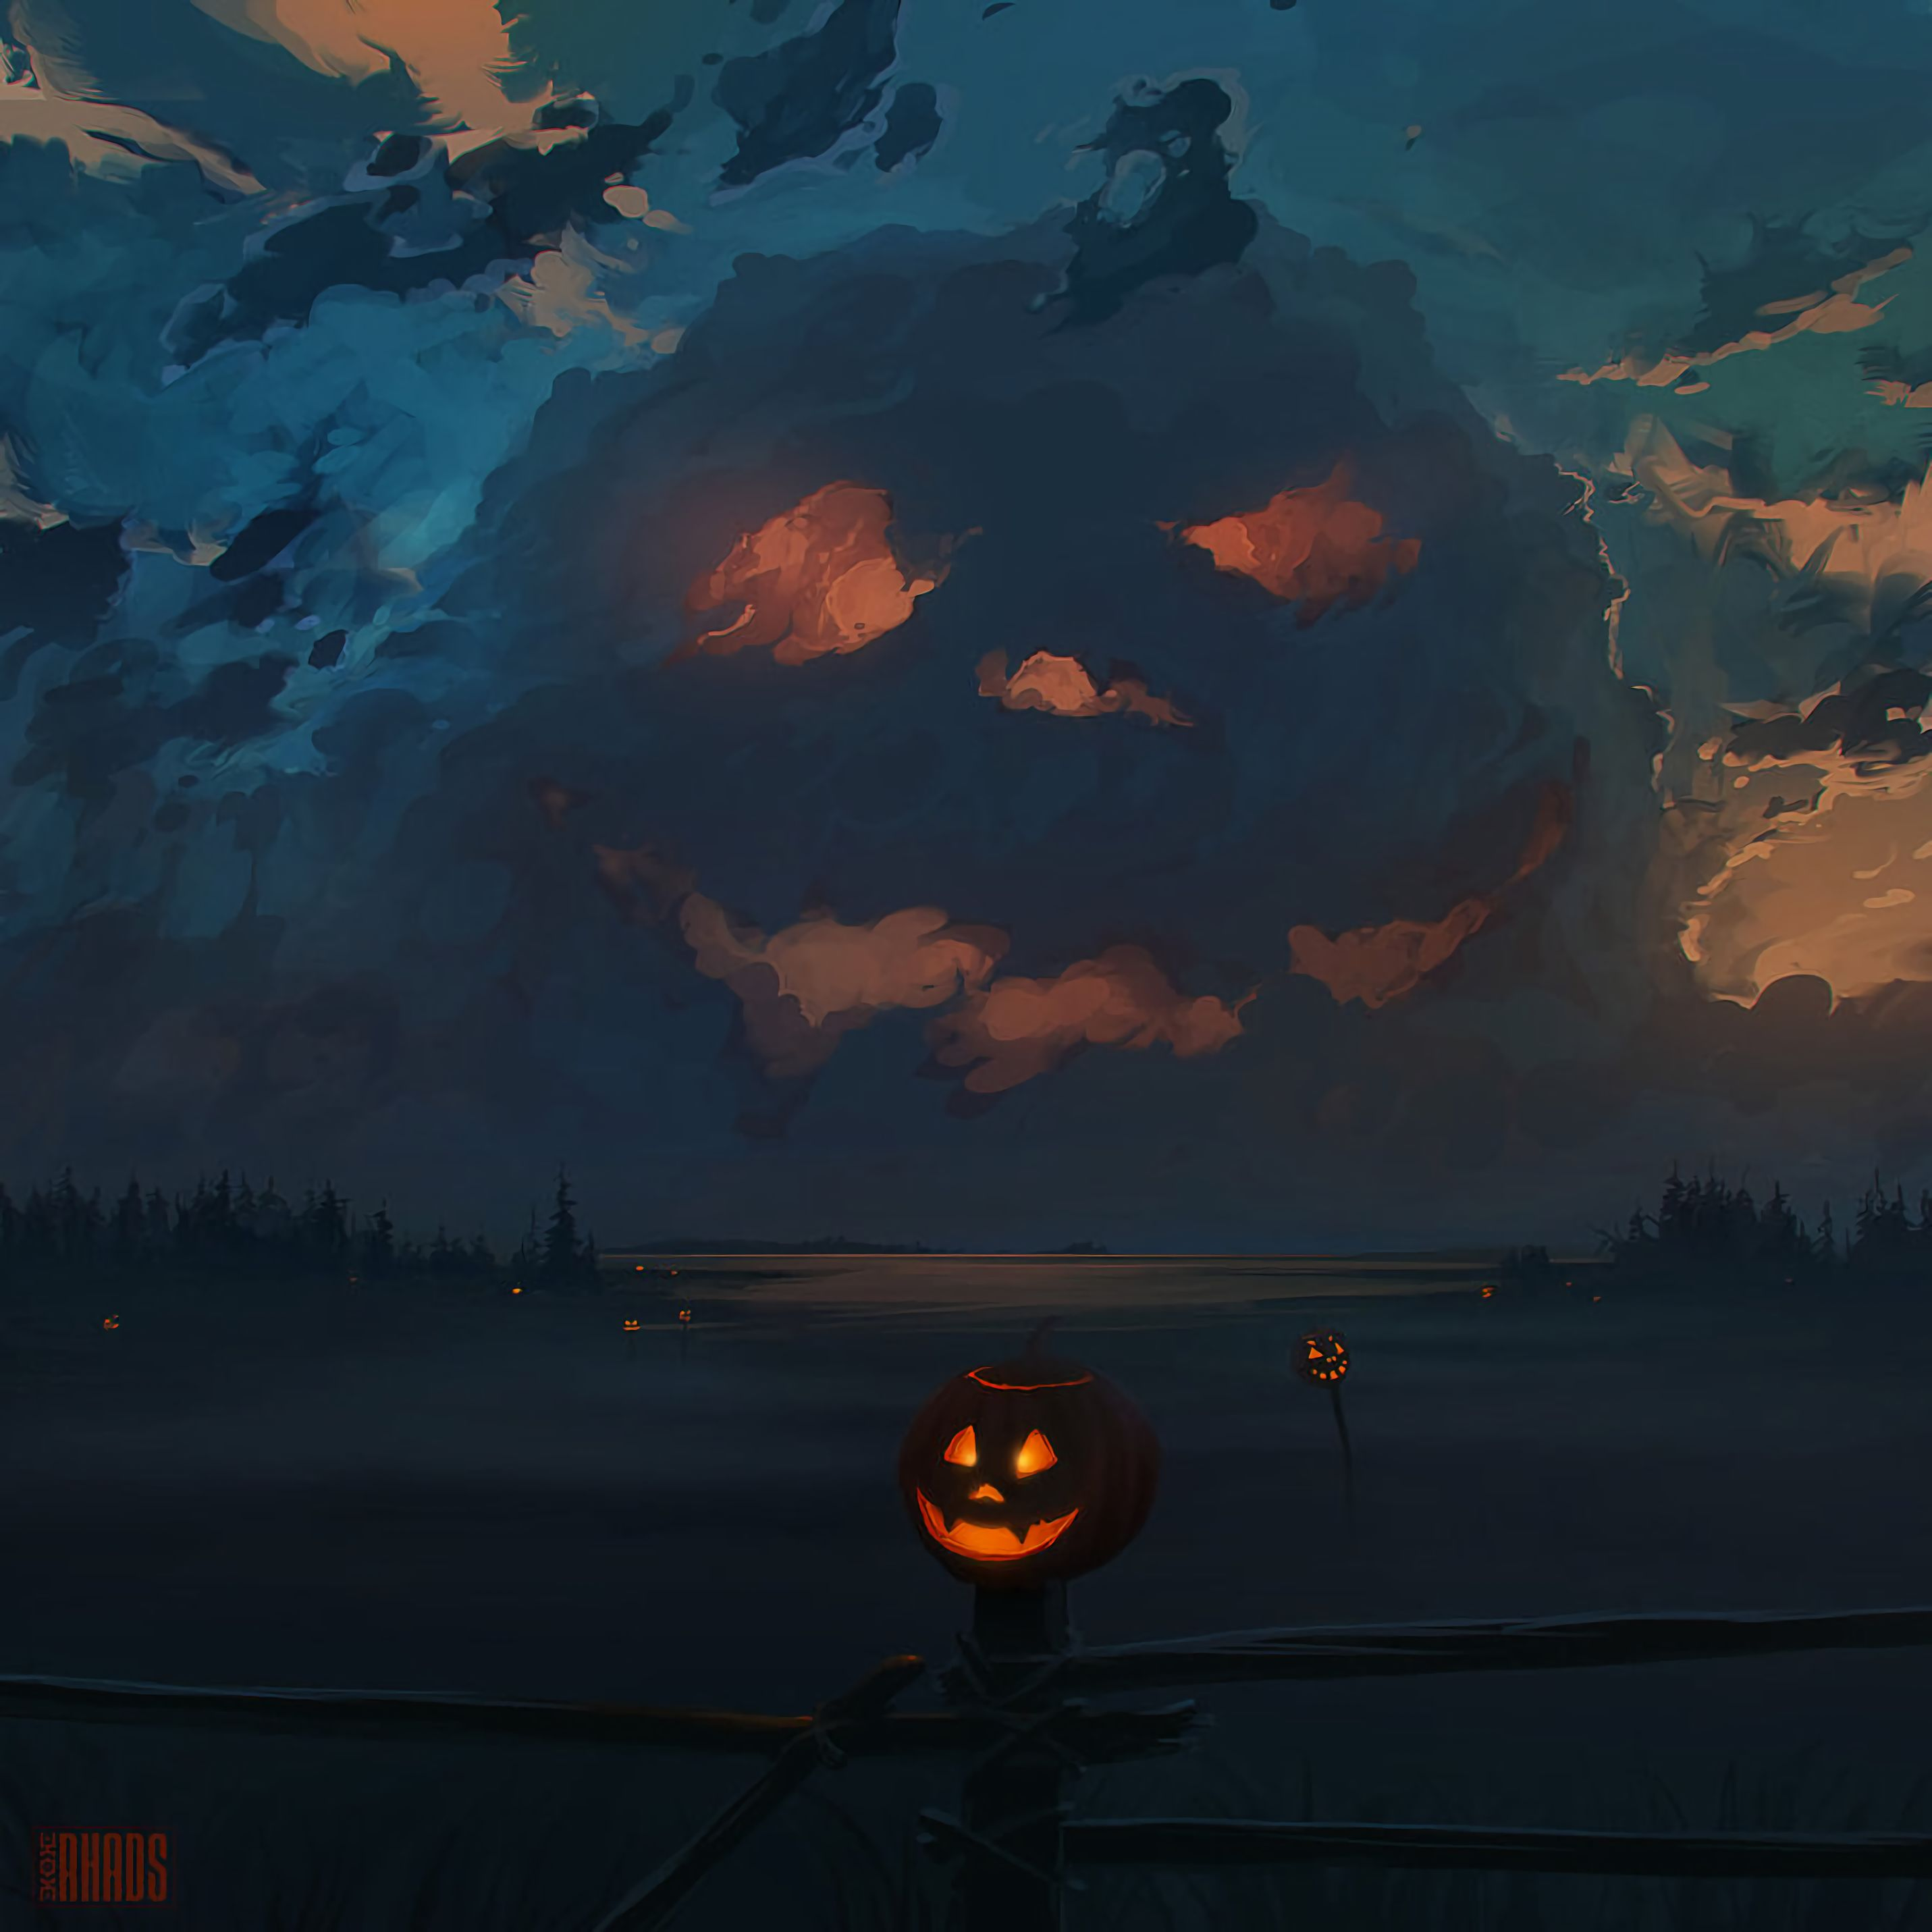 54517 download wallpaper Holidays, Jack Lamp, Jack's Lamp, Pumpkin, Halloween, Art, Clouds screensavers and pictures for free